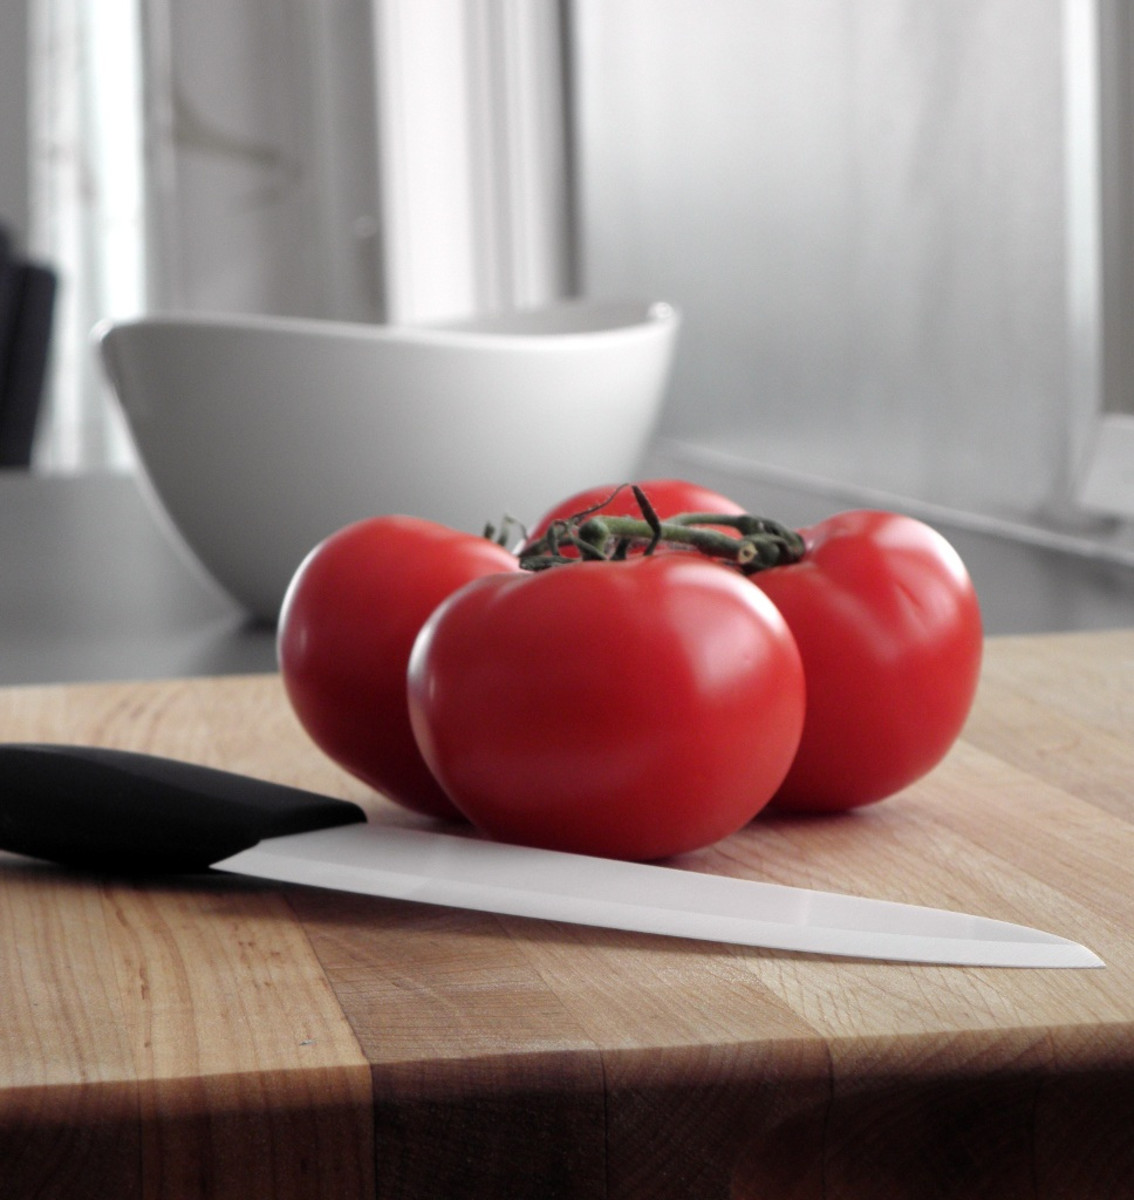 Ceramic knives are the best knife to cut fruits, vegetables, fish, and boneless meats.